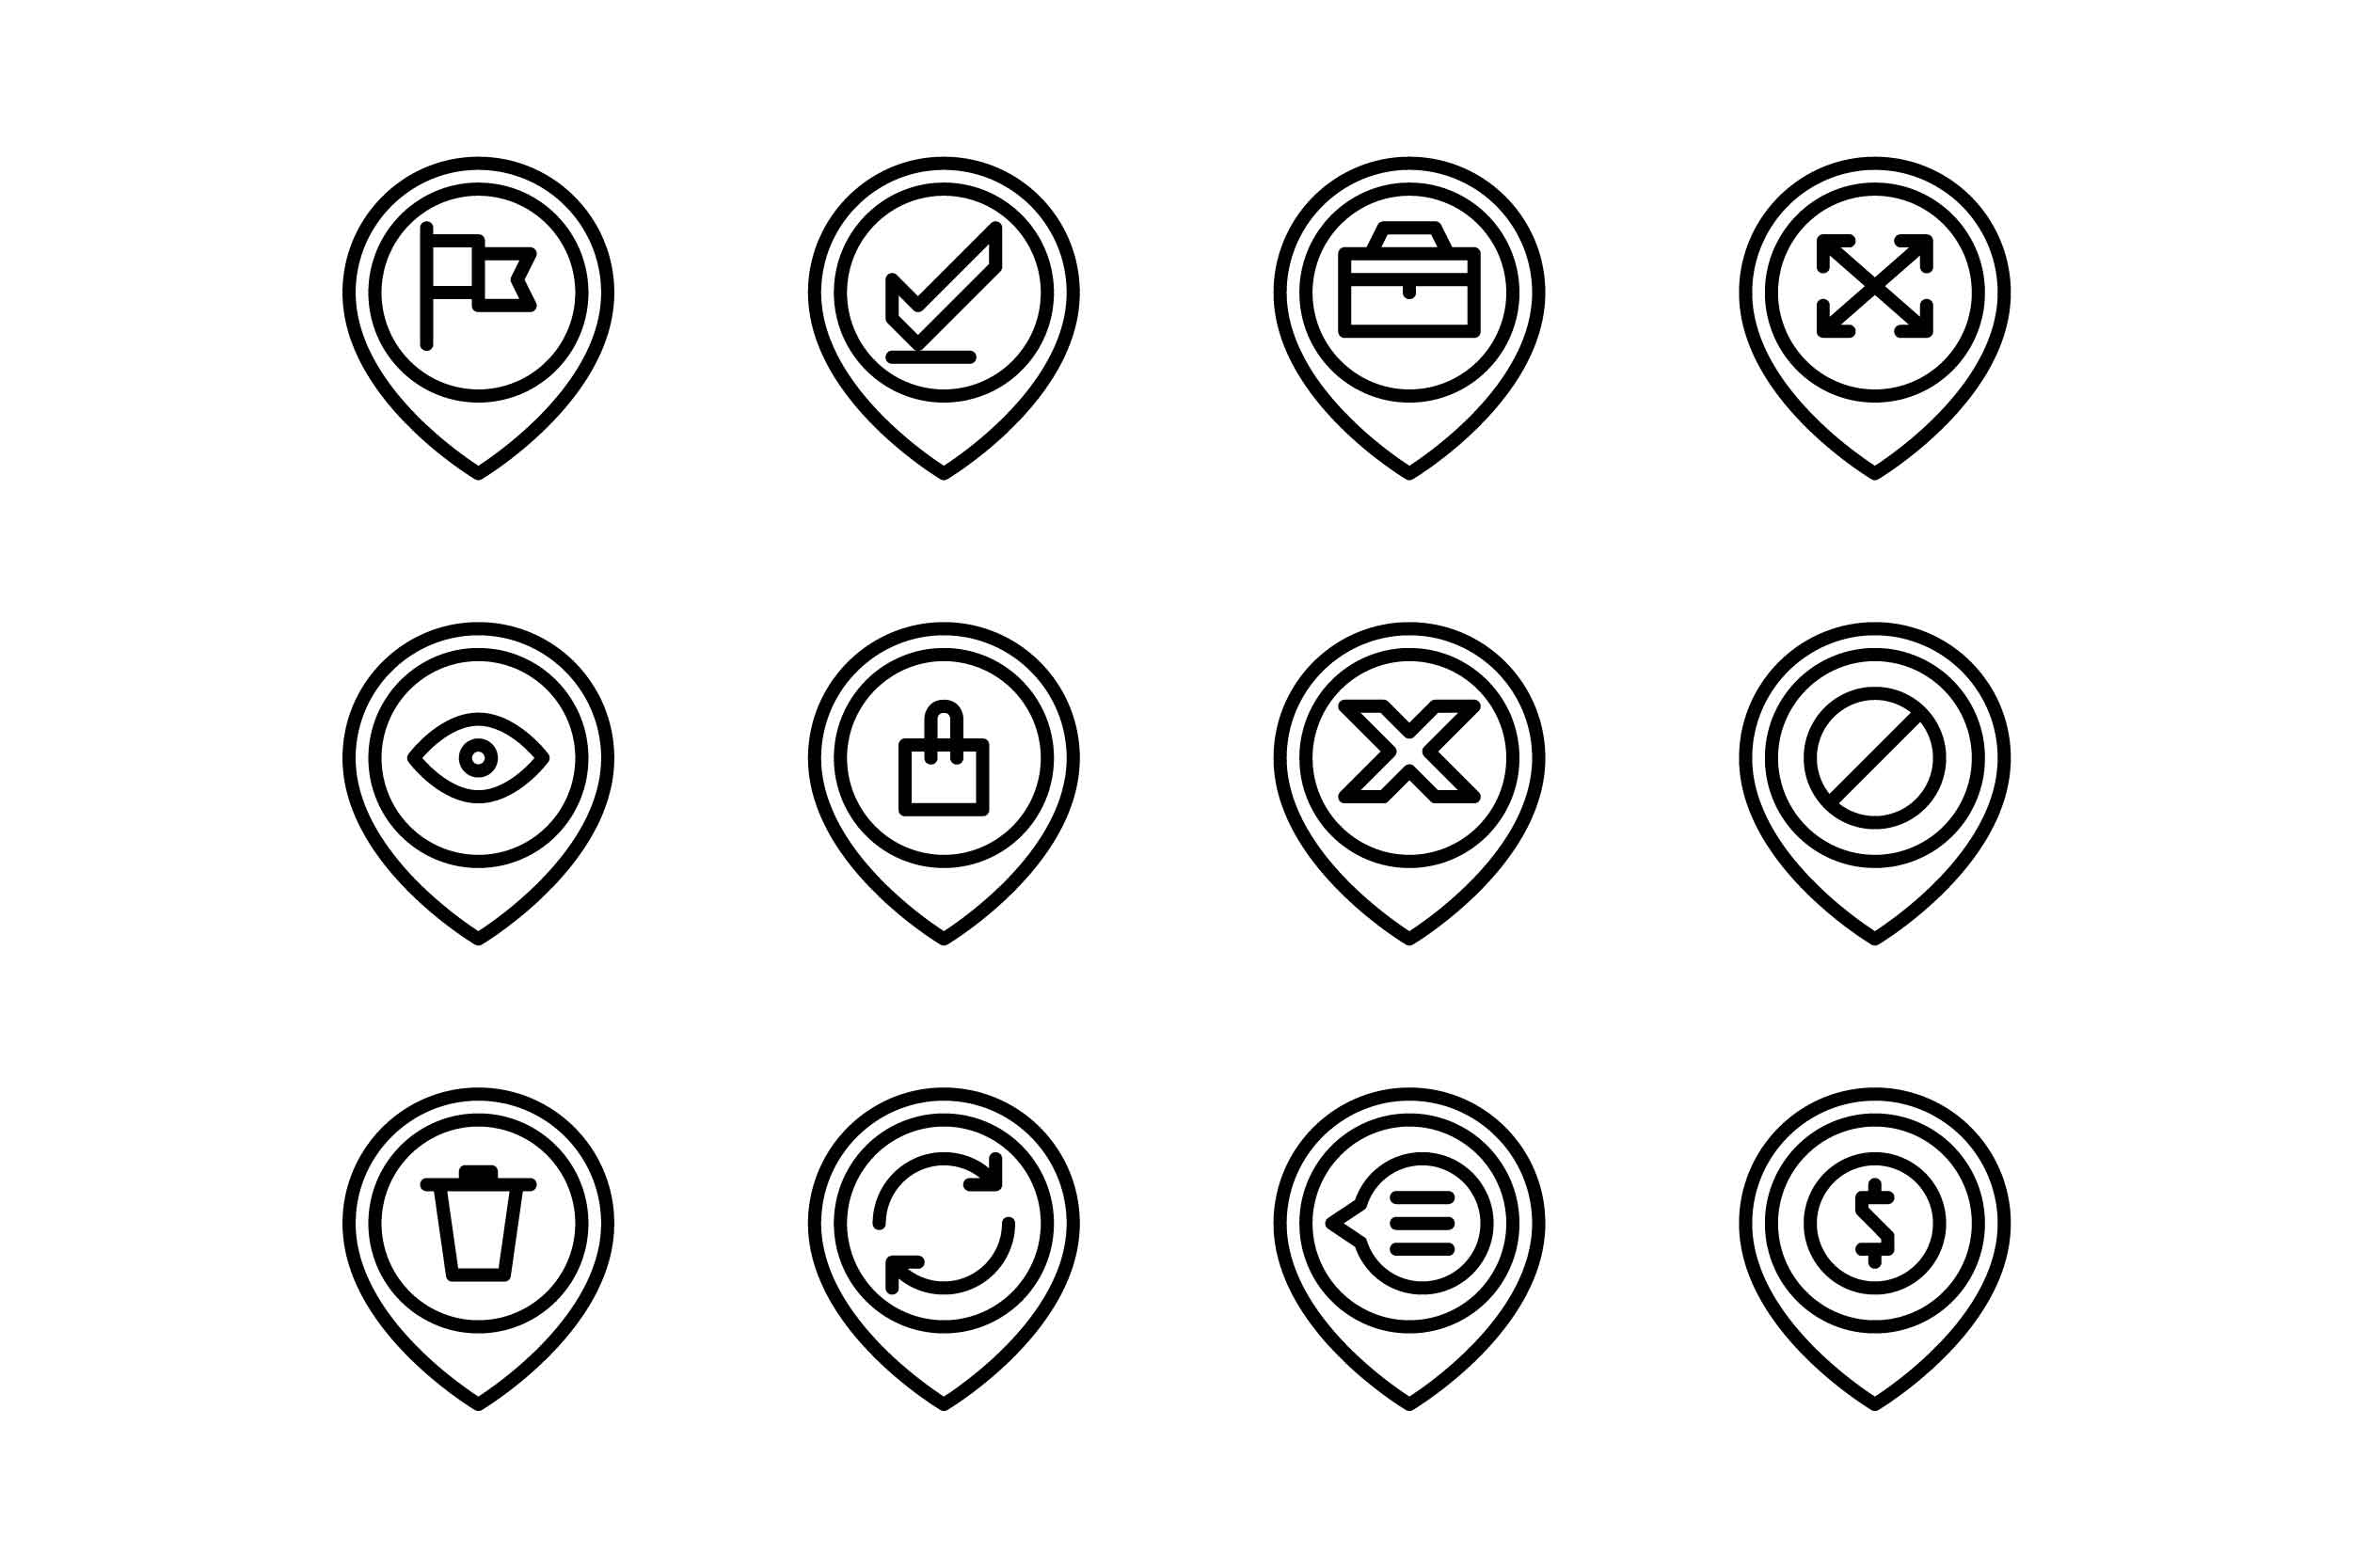 Download Free Position Black And White Line Icon Graphic By Glyph Faisalovers Creative Fabrica for Cricut Explore, Silhouette and other cutting machines.